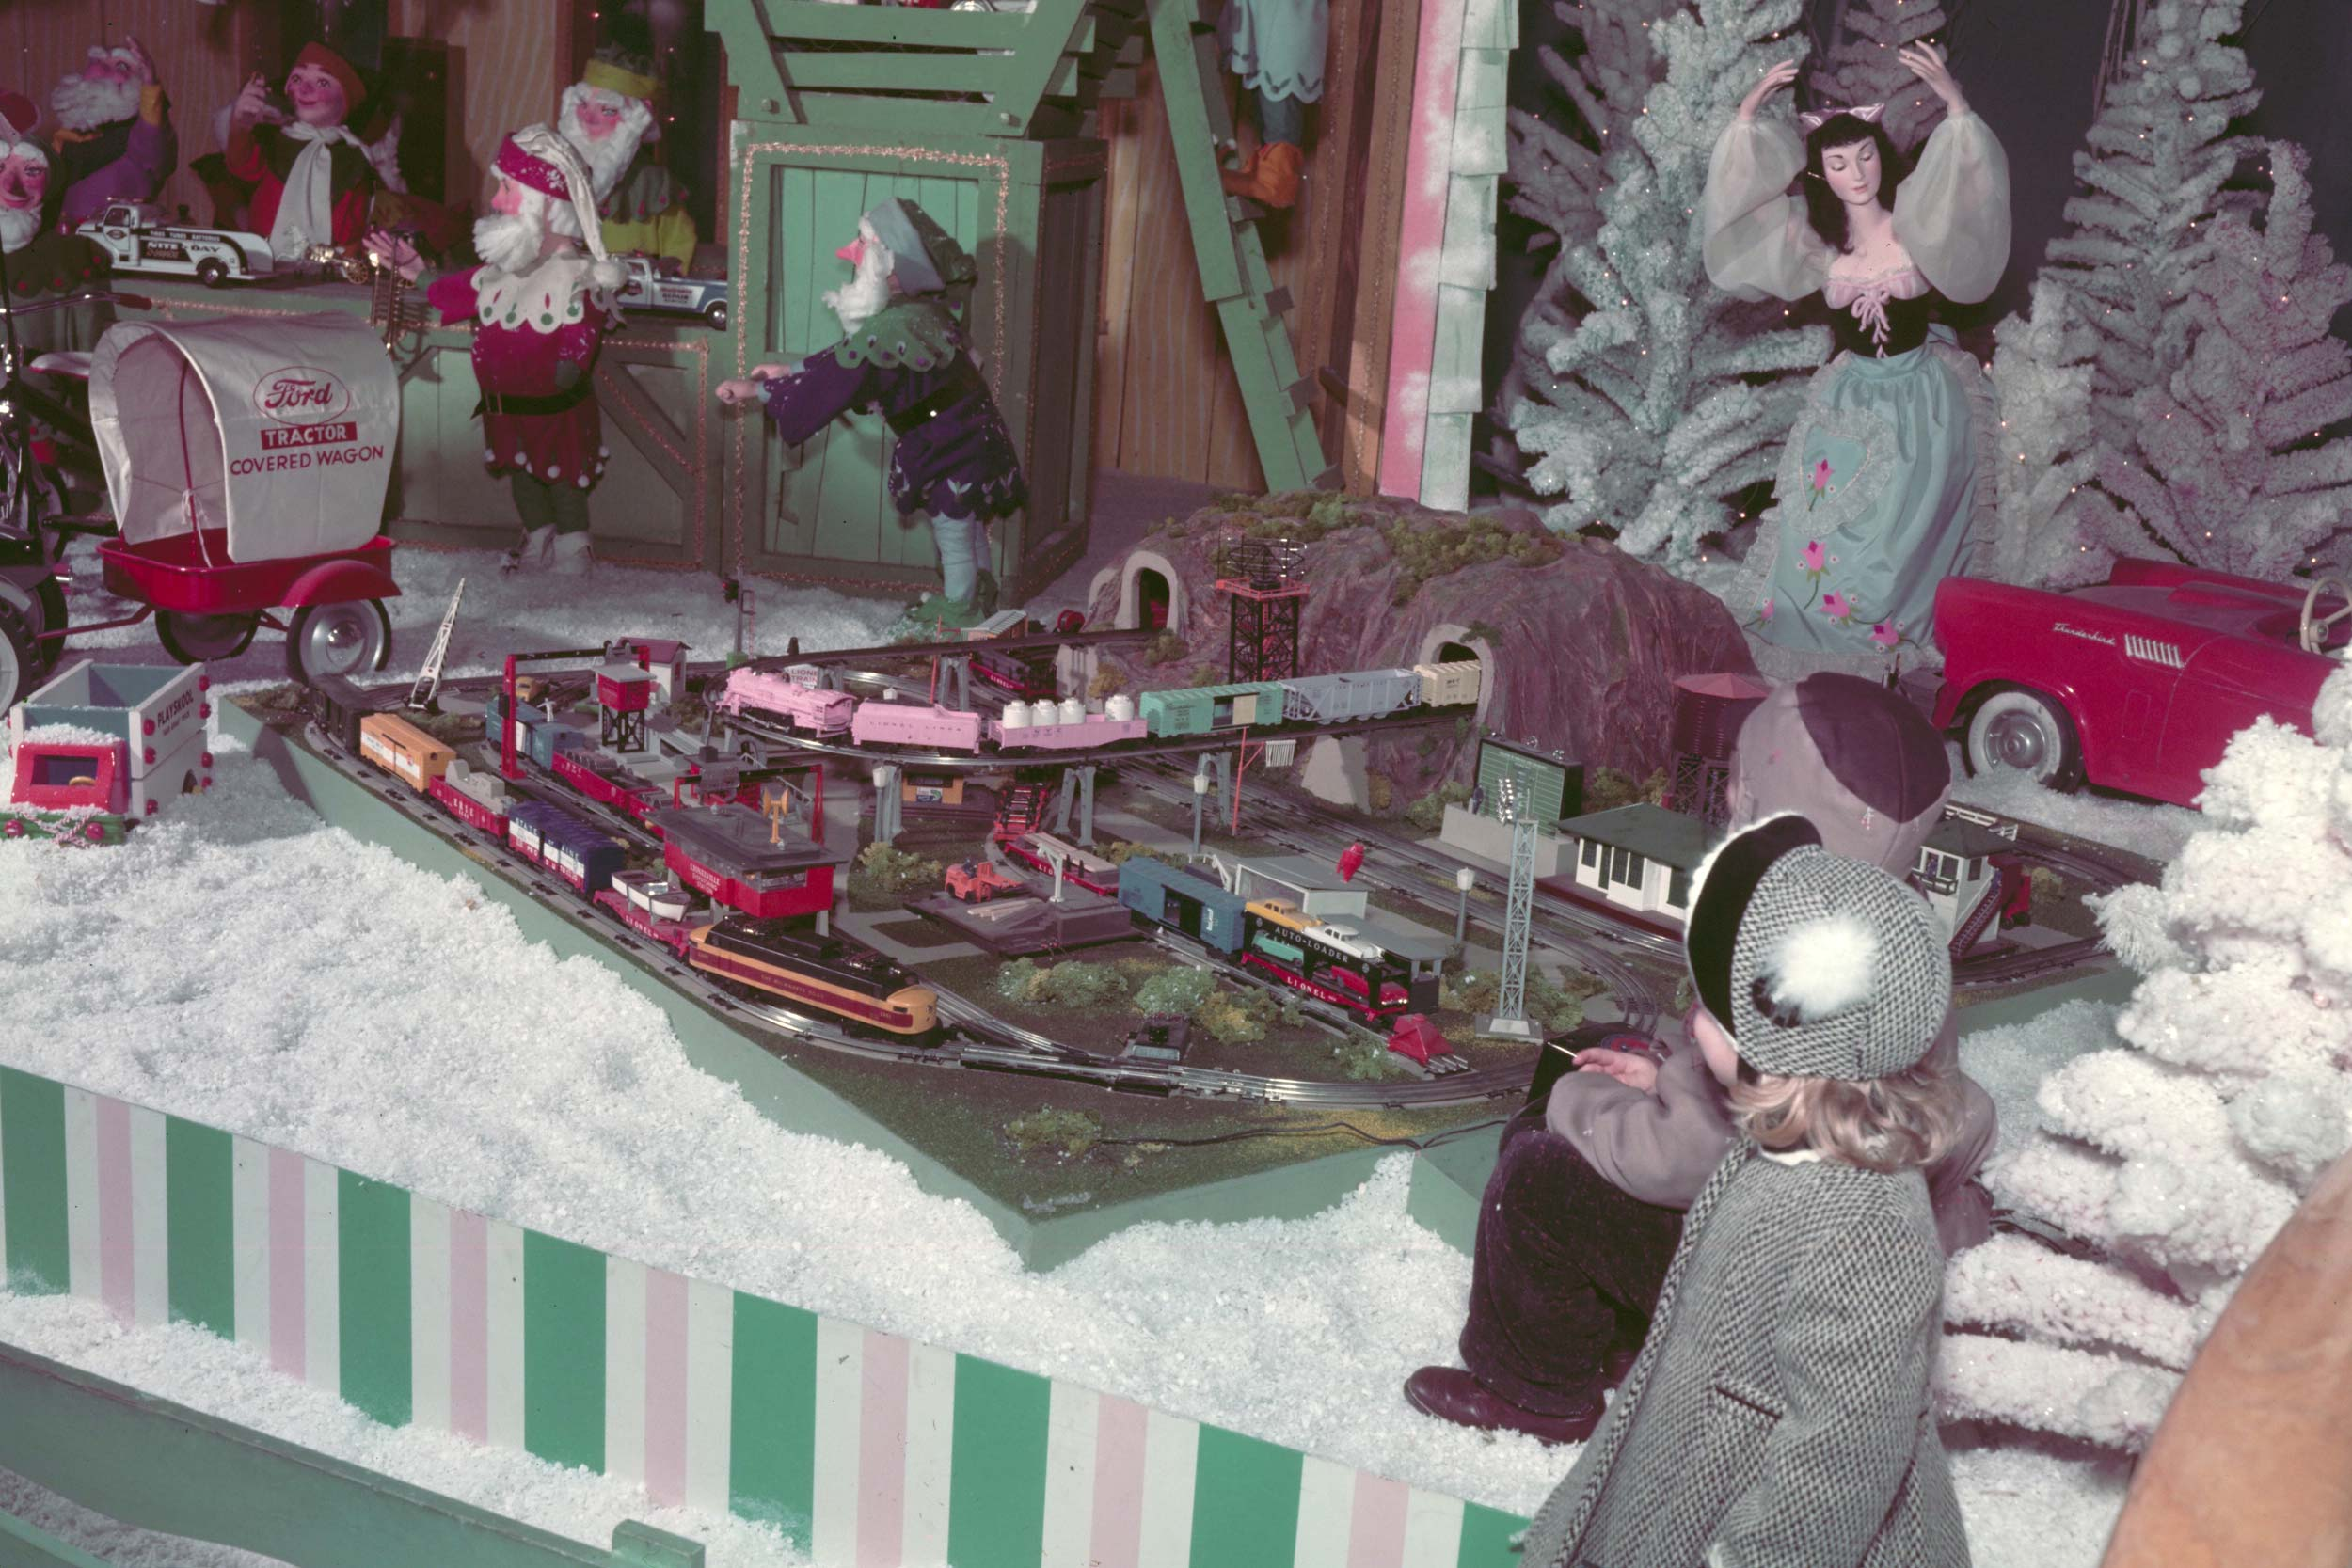 1957 Ford Rotunda Christmas train exhibit